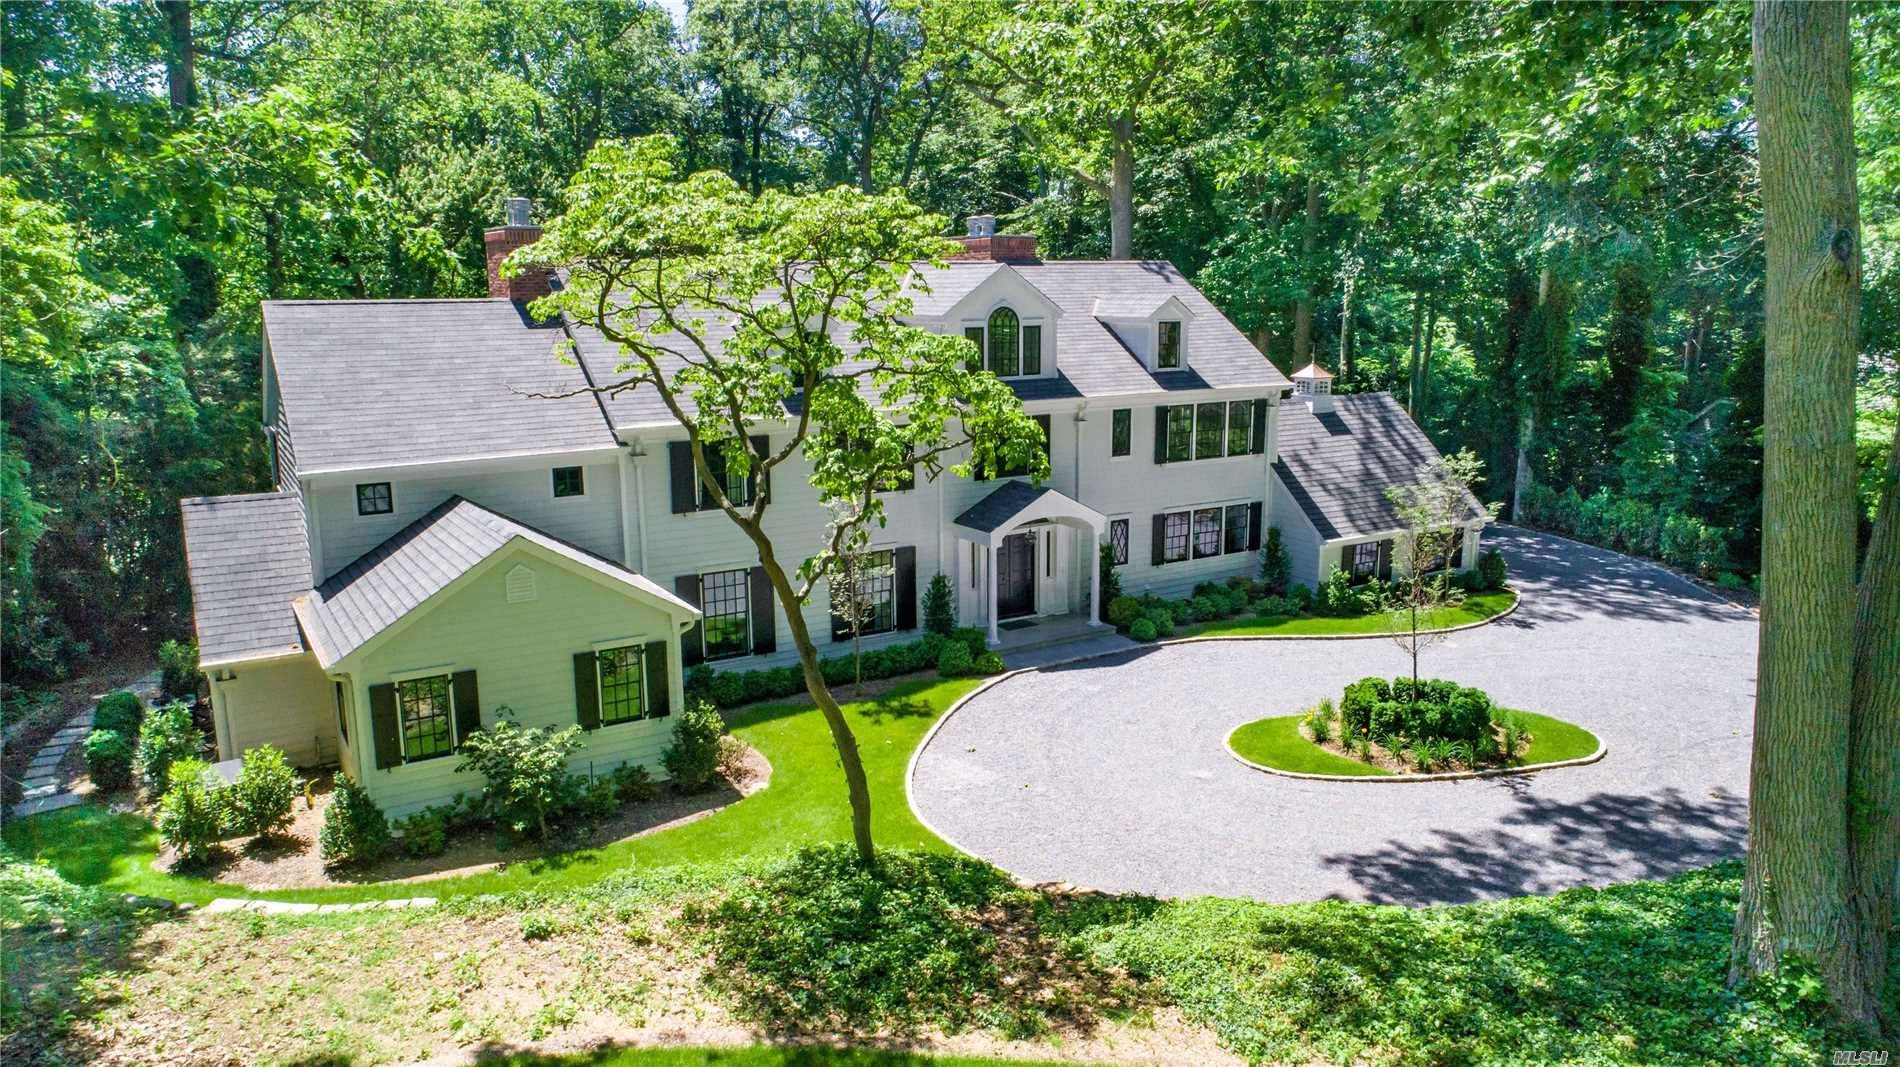 Newly Constructed With Striking Characteristics In A Very Desirable Flower Hill Location. A Wash With Old World Details. 6 Fireplaces, 5 Bedrooms Plus Loft (2 Master Suites). Amazing Kitchen/Den All Backed By A Charismatic One Acre Lot. Beautifully Landscaped, Circular Driveway. Close To Lirr , Shopping , Restaurants & Country Clubs.